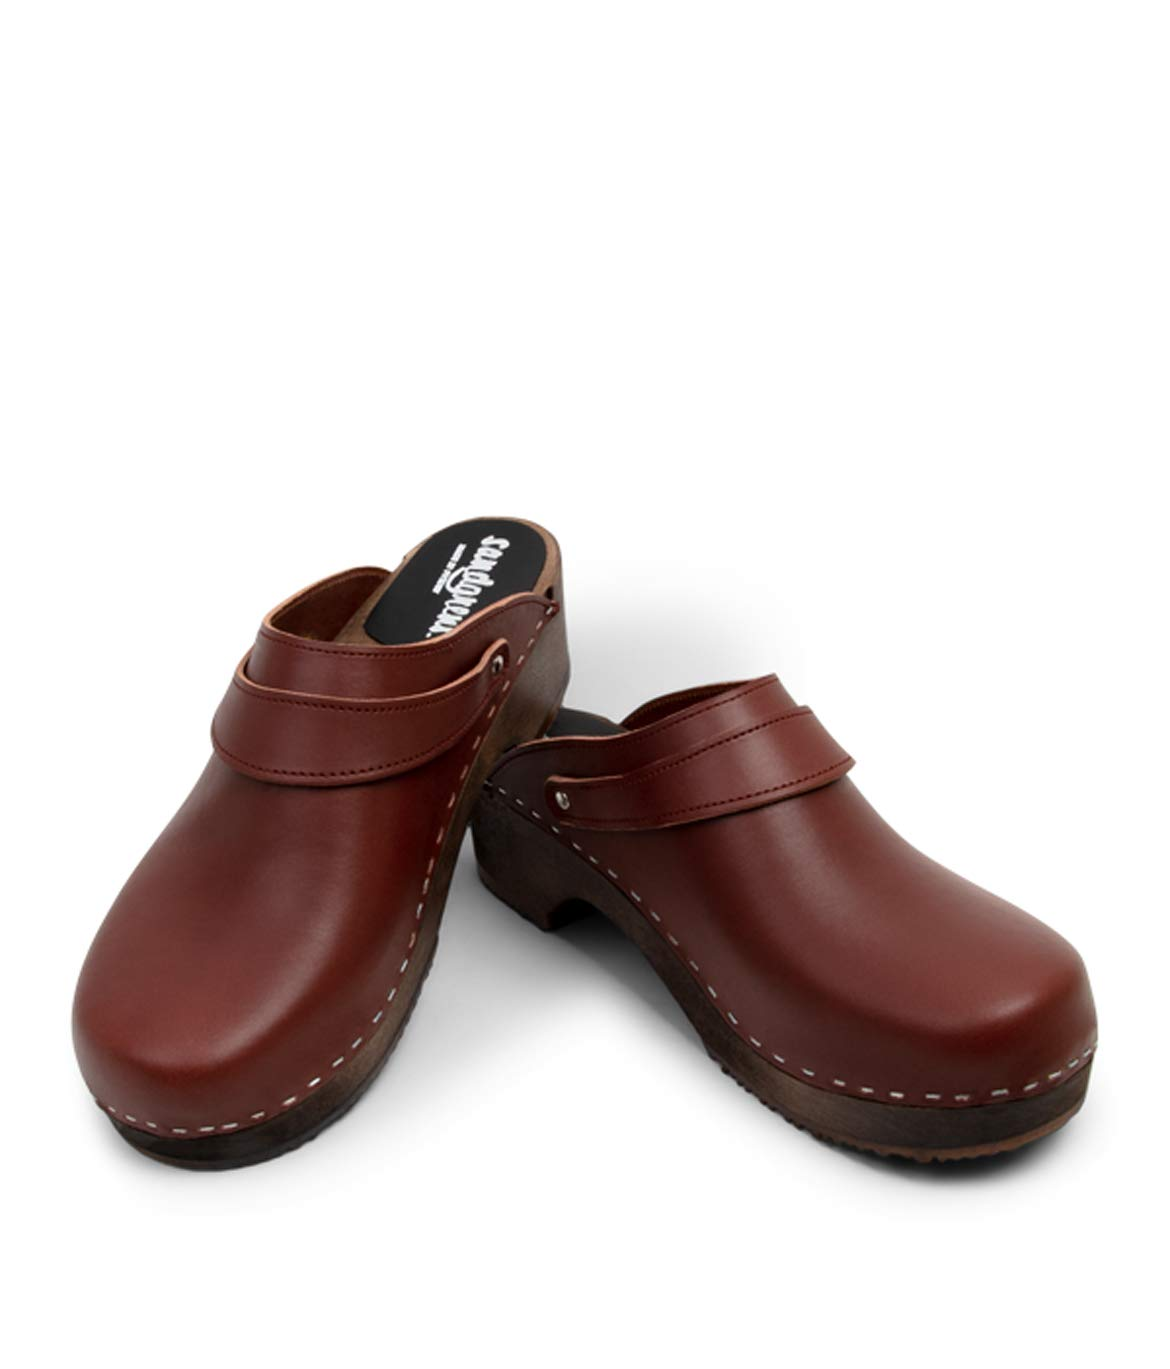 Sandgrens Swedish Wooden Clogs for Men with Leather Upper | Nybro (Dark Base) Cognac, EU 44 by Sandgrens (Image #2)